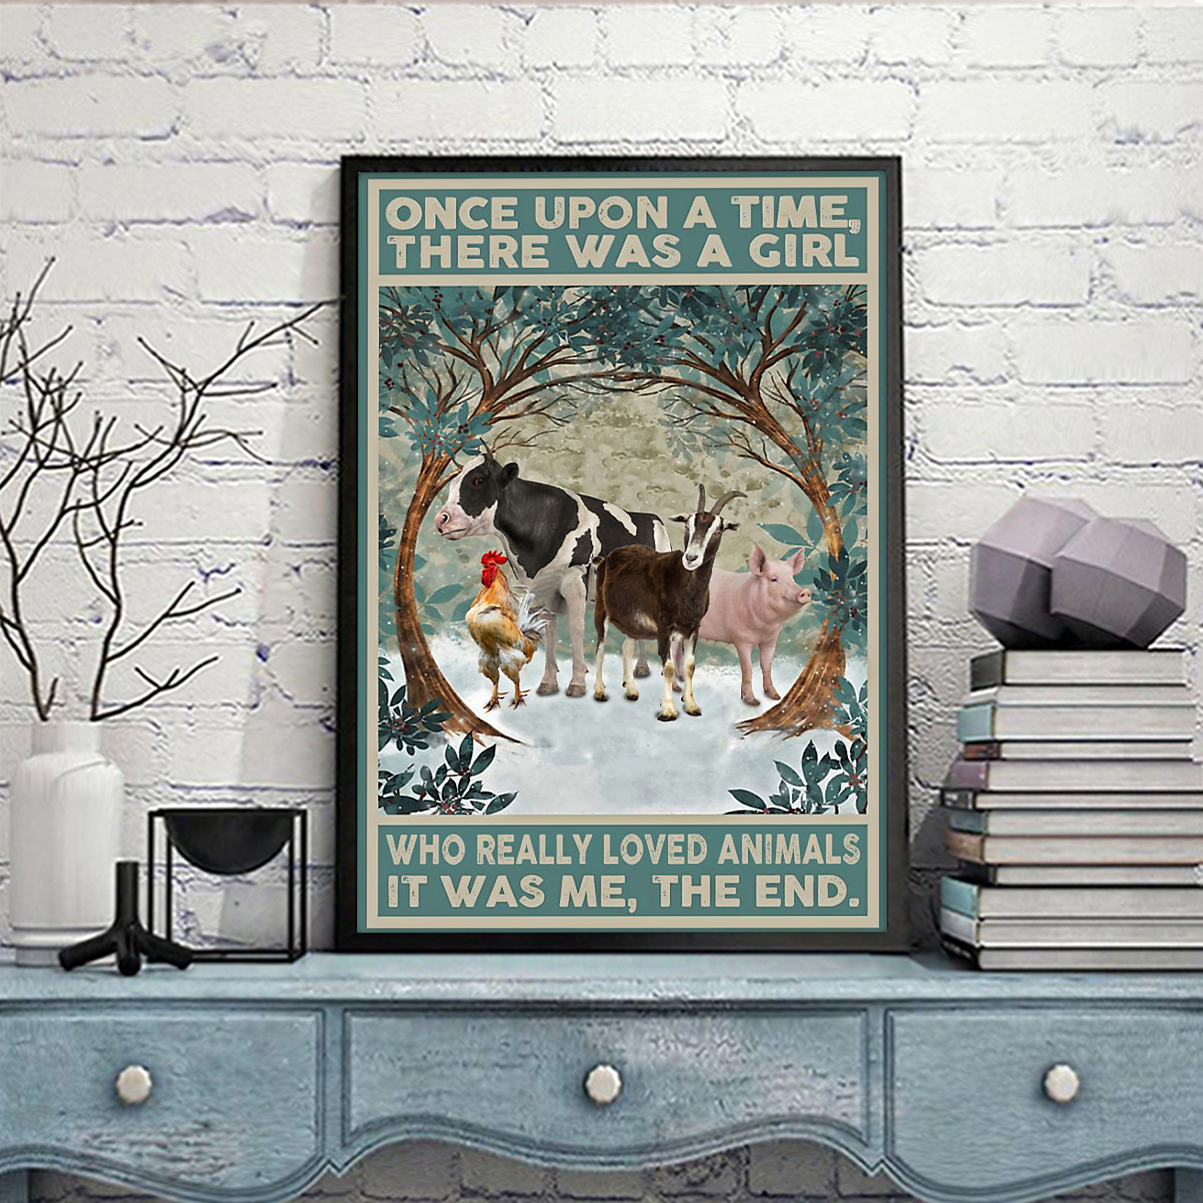 Once upon a time there was a girl who really loved animals it was me the end poster A3